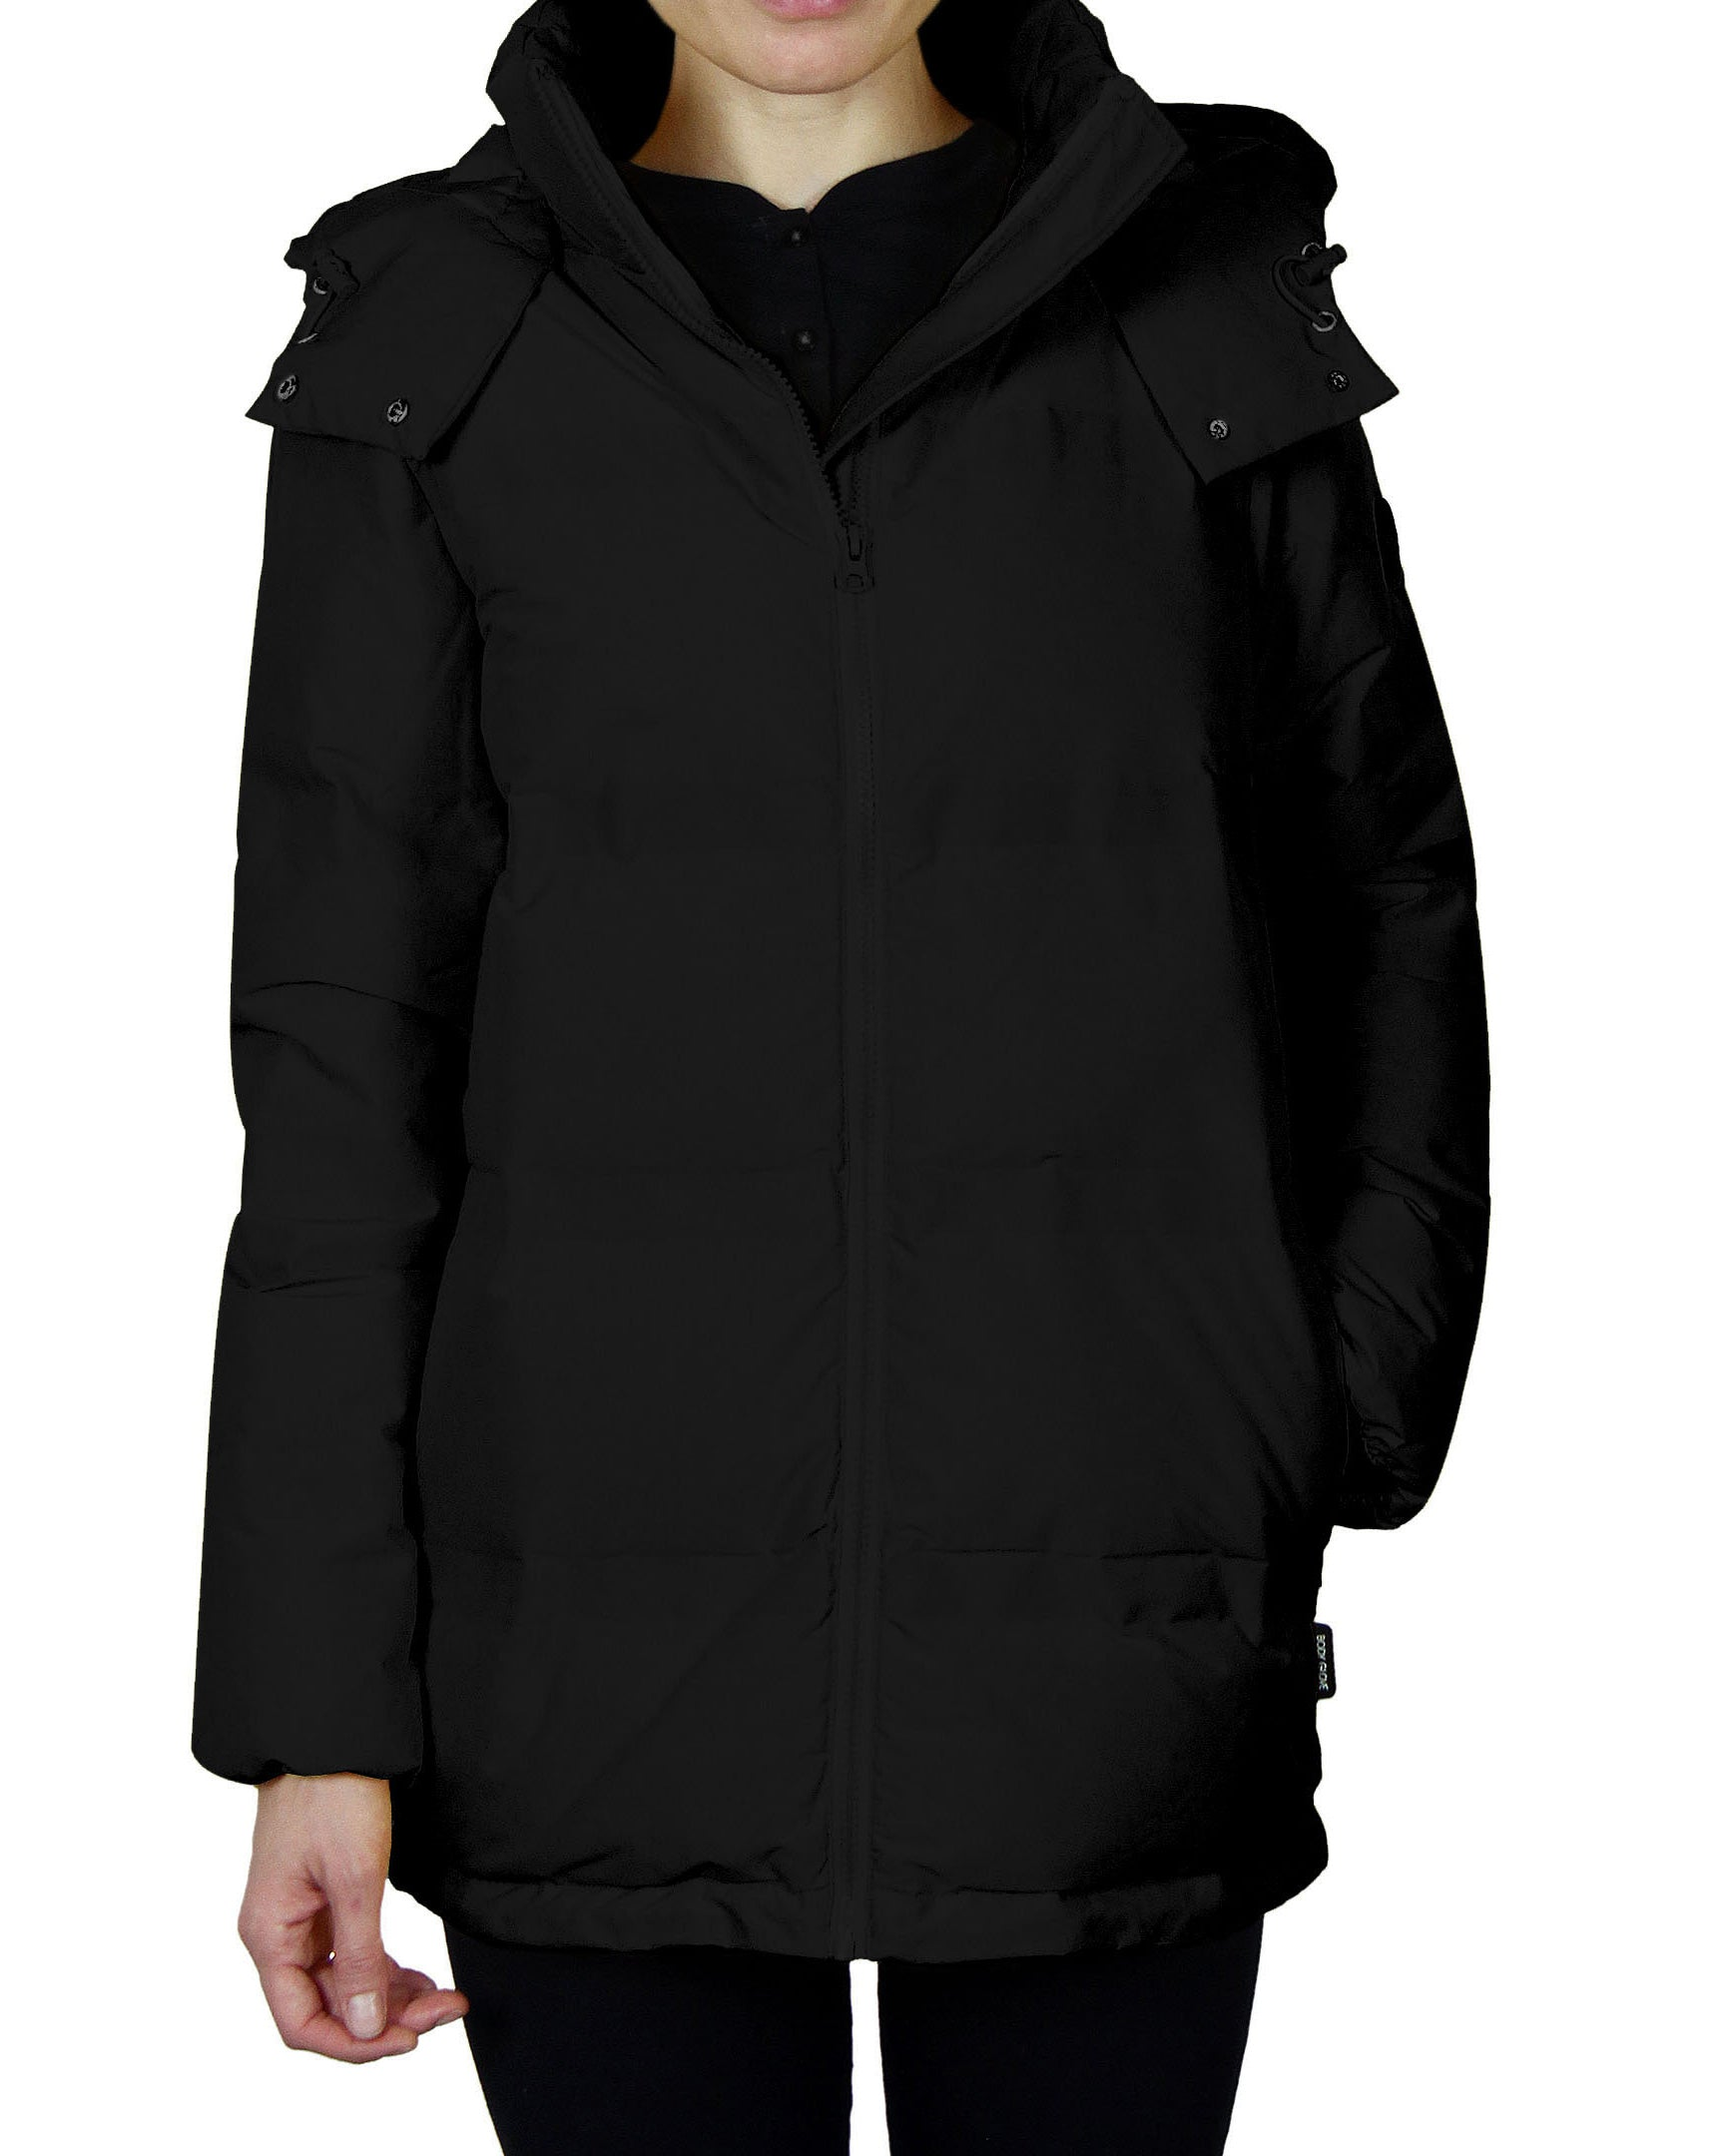 Women's Quilted Down Parka Coat - Black